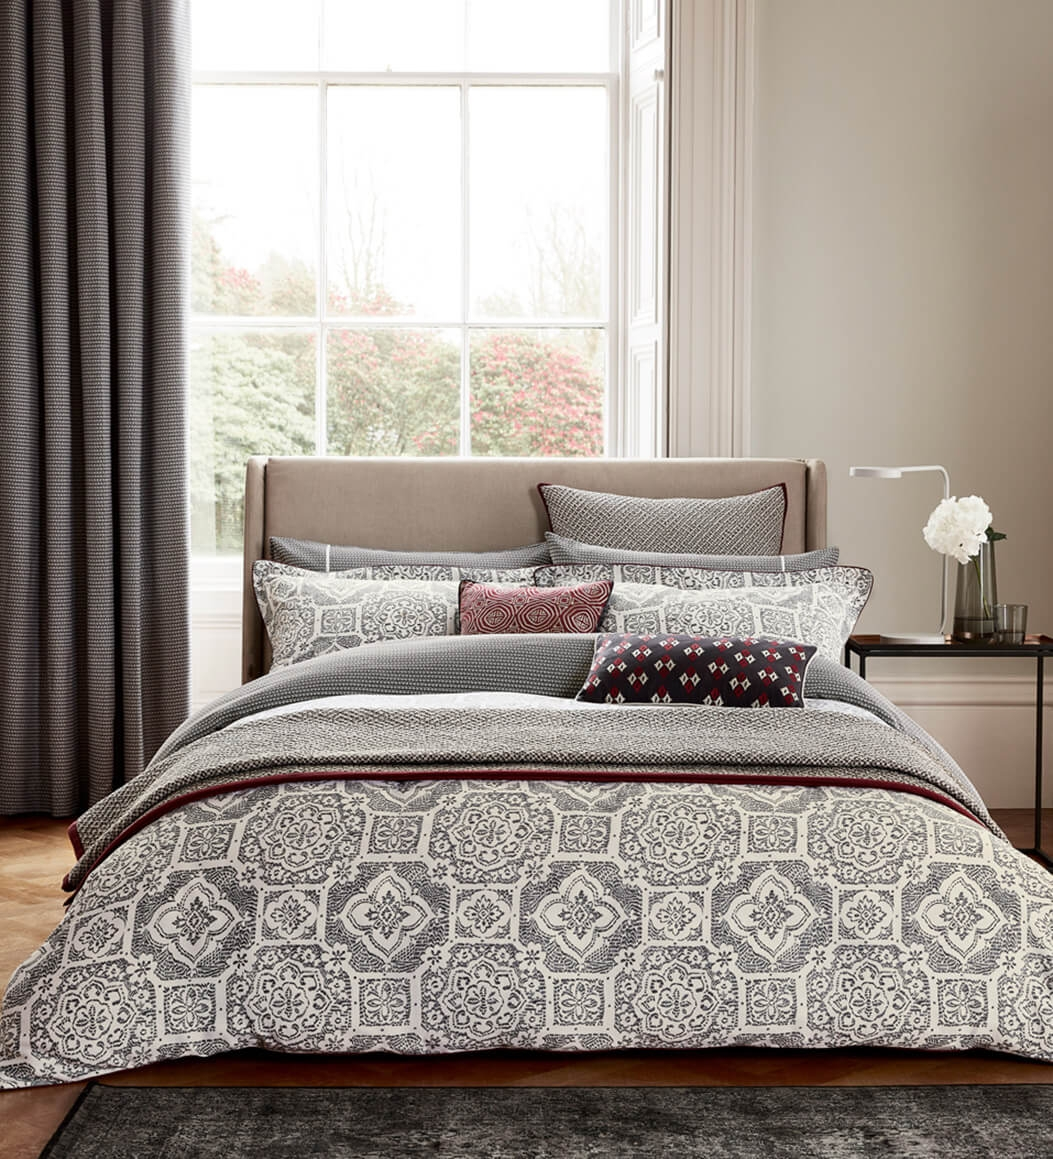 Image of Bedeck Amaya Duvet Cover, Superking, Charcoal